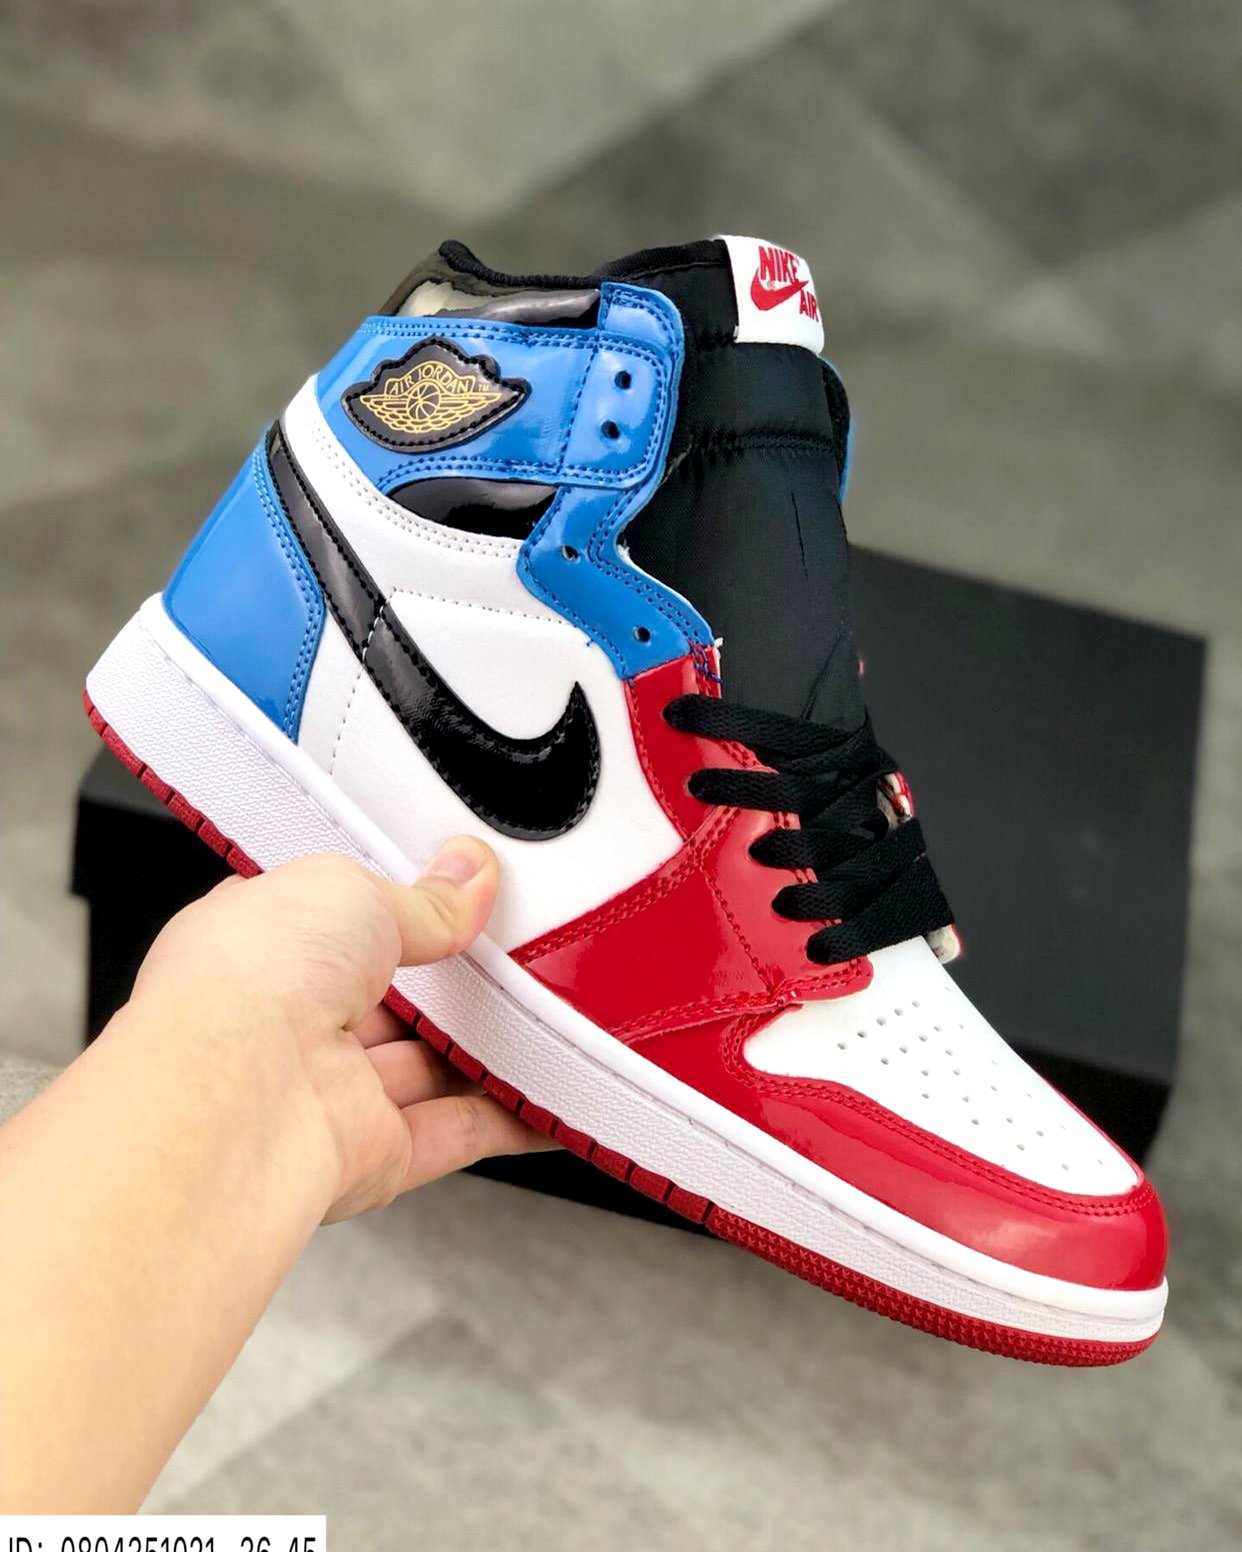 Image of Nike Air Jordan 1 Fearless patent leather high basketball shoes